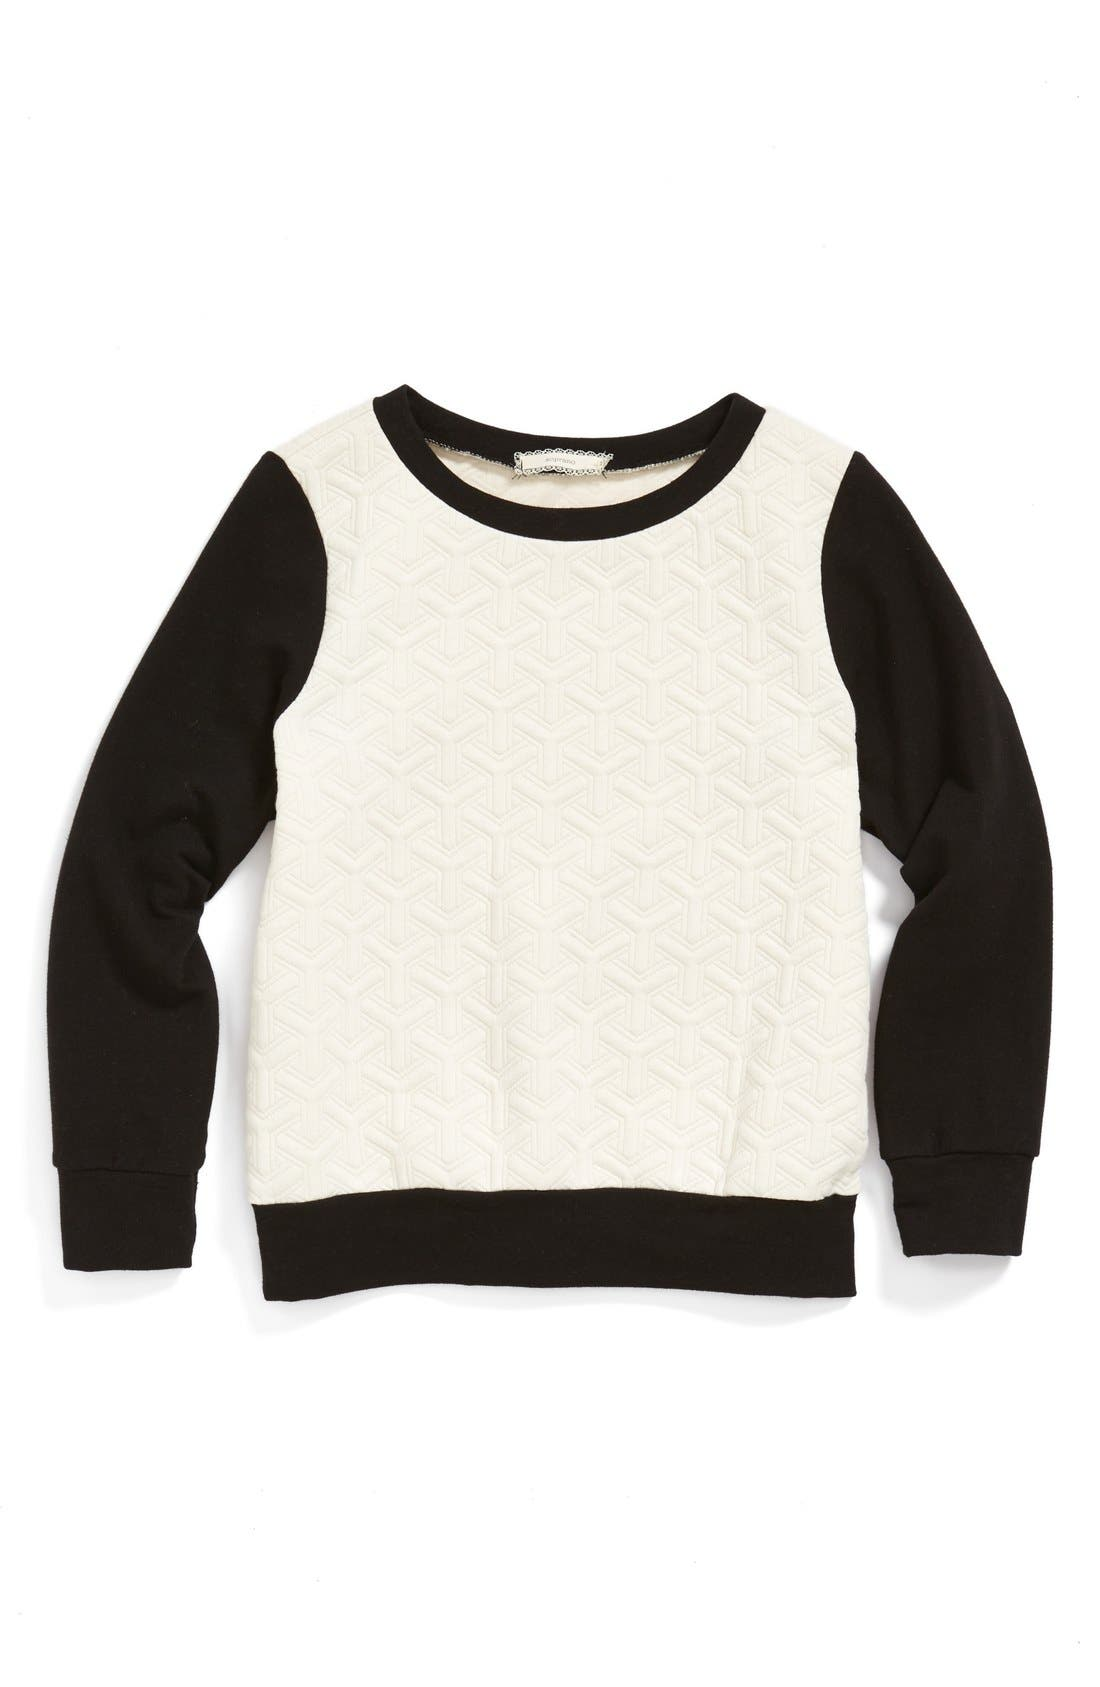 Alternate Image 1 Selected - Soprano Quilted Sweater (Big Girls)